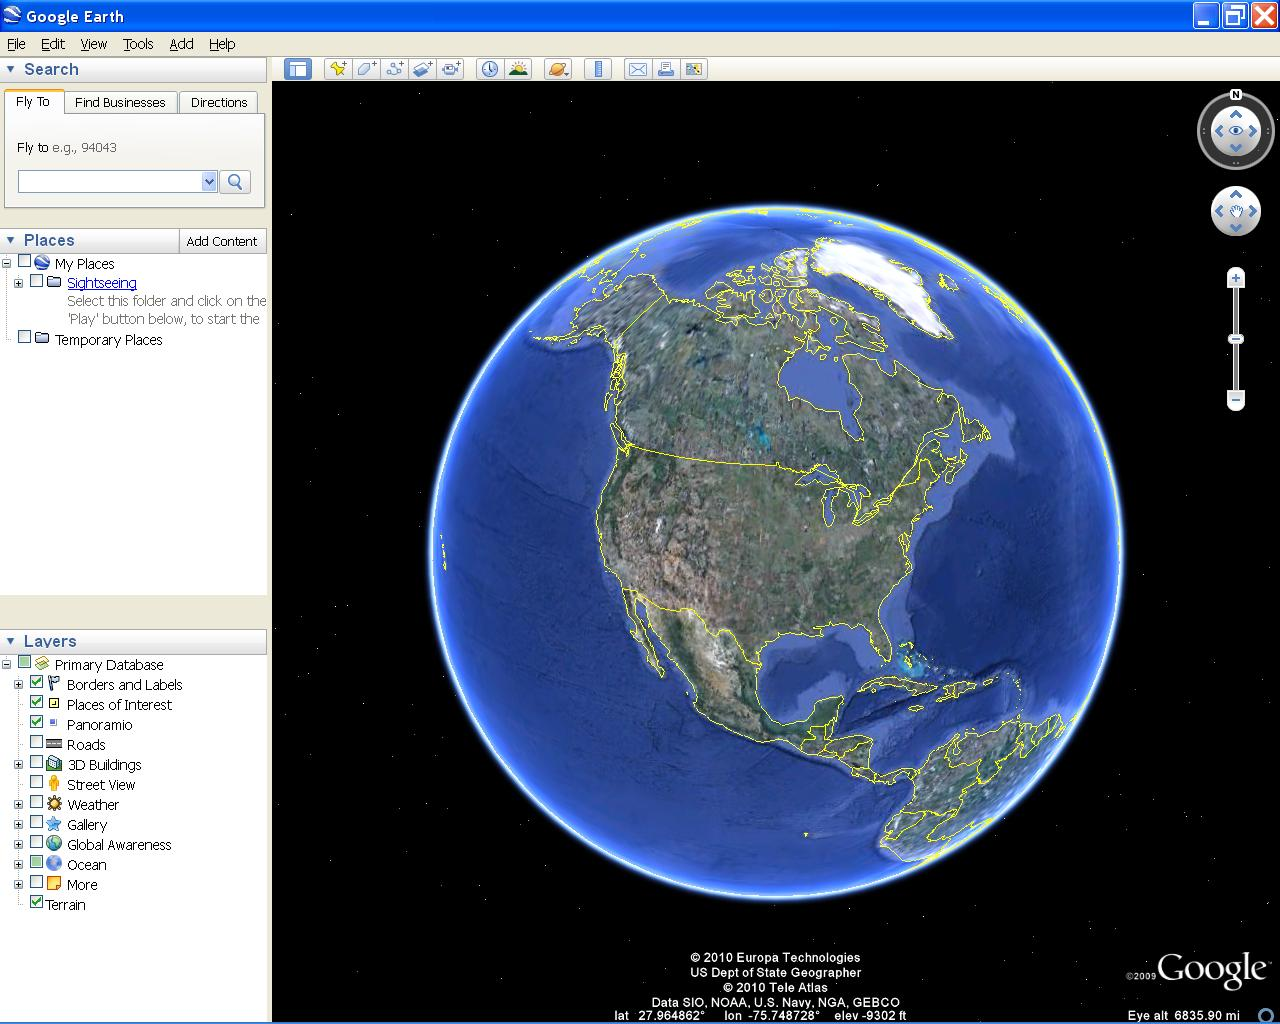 Part 1—Download and Install Google Earth